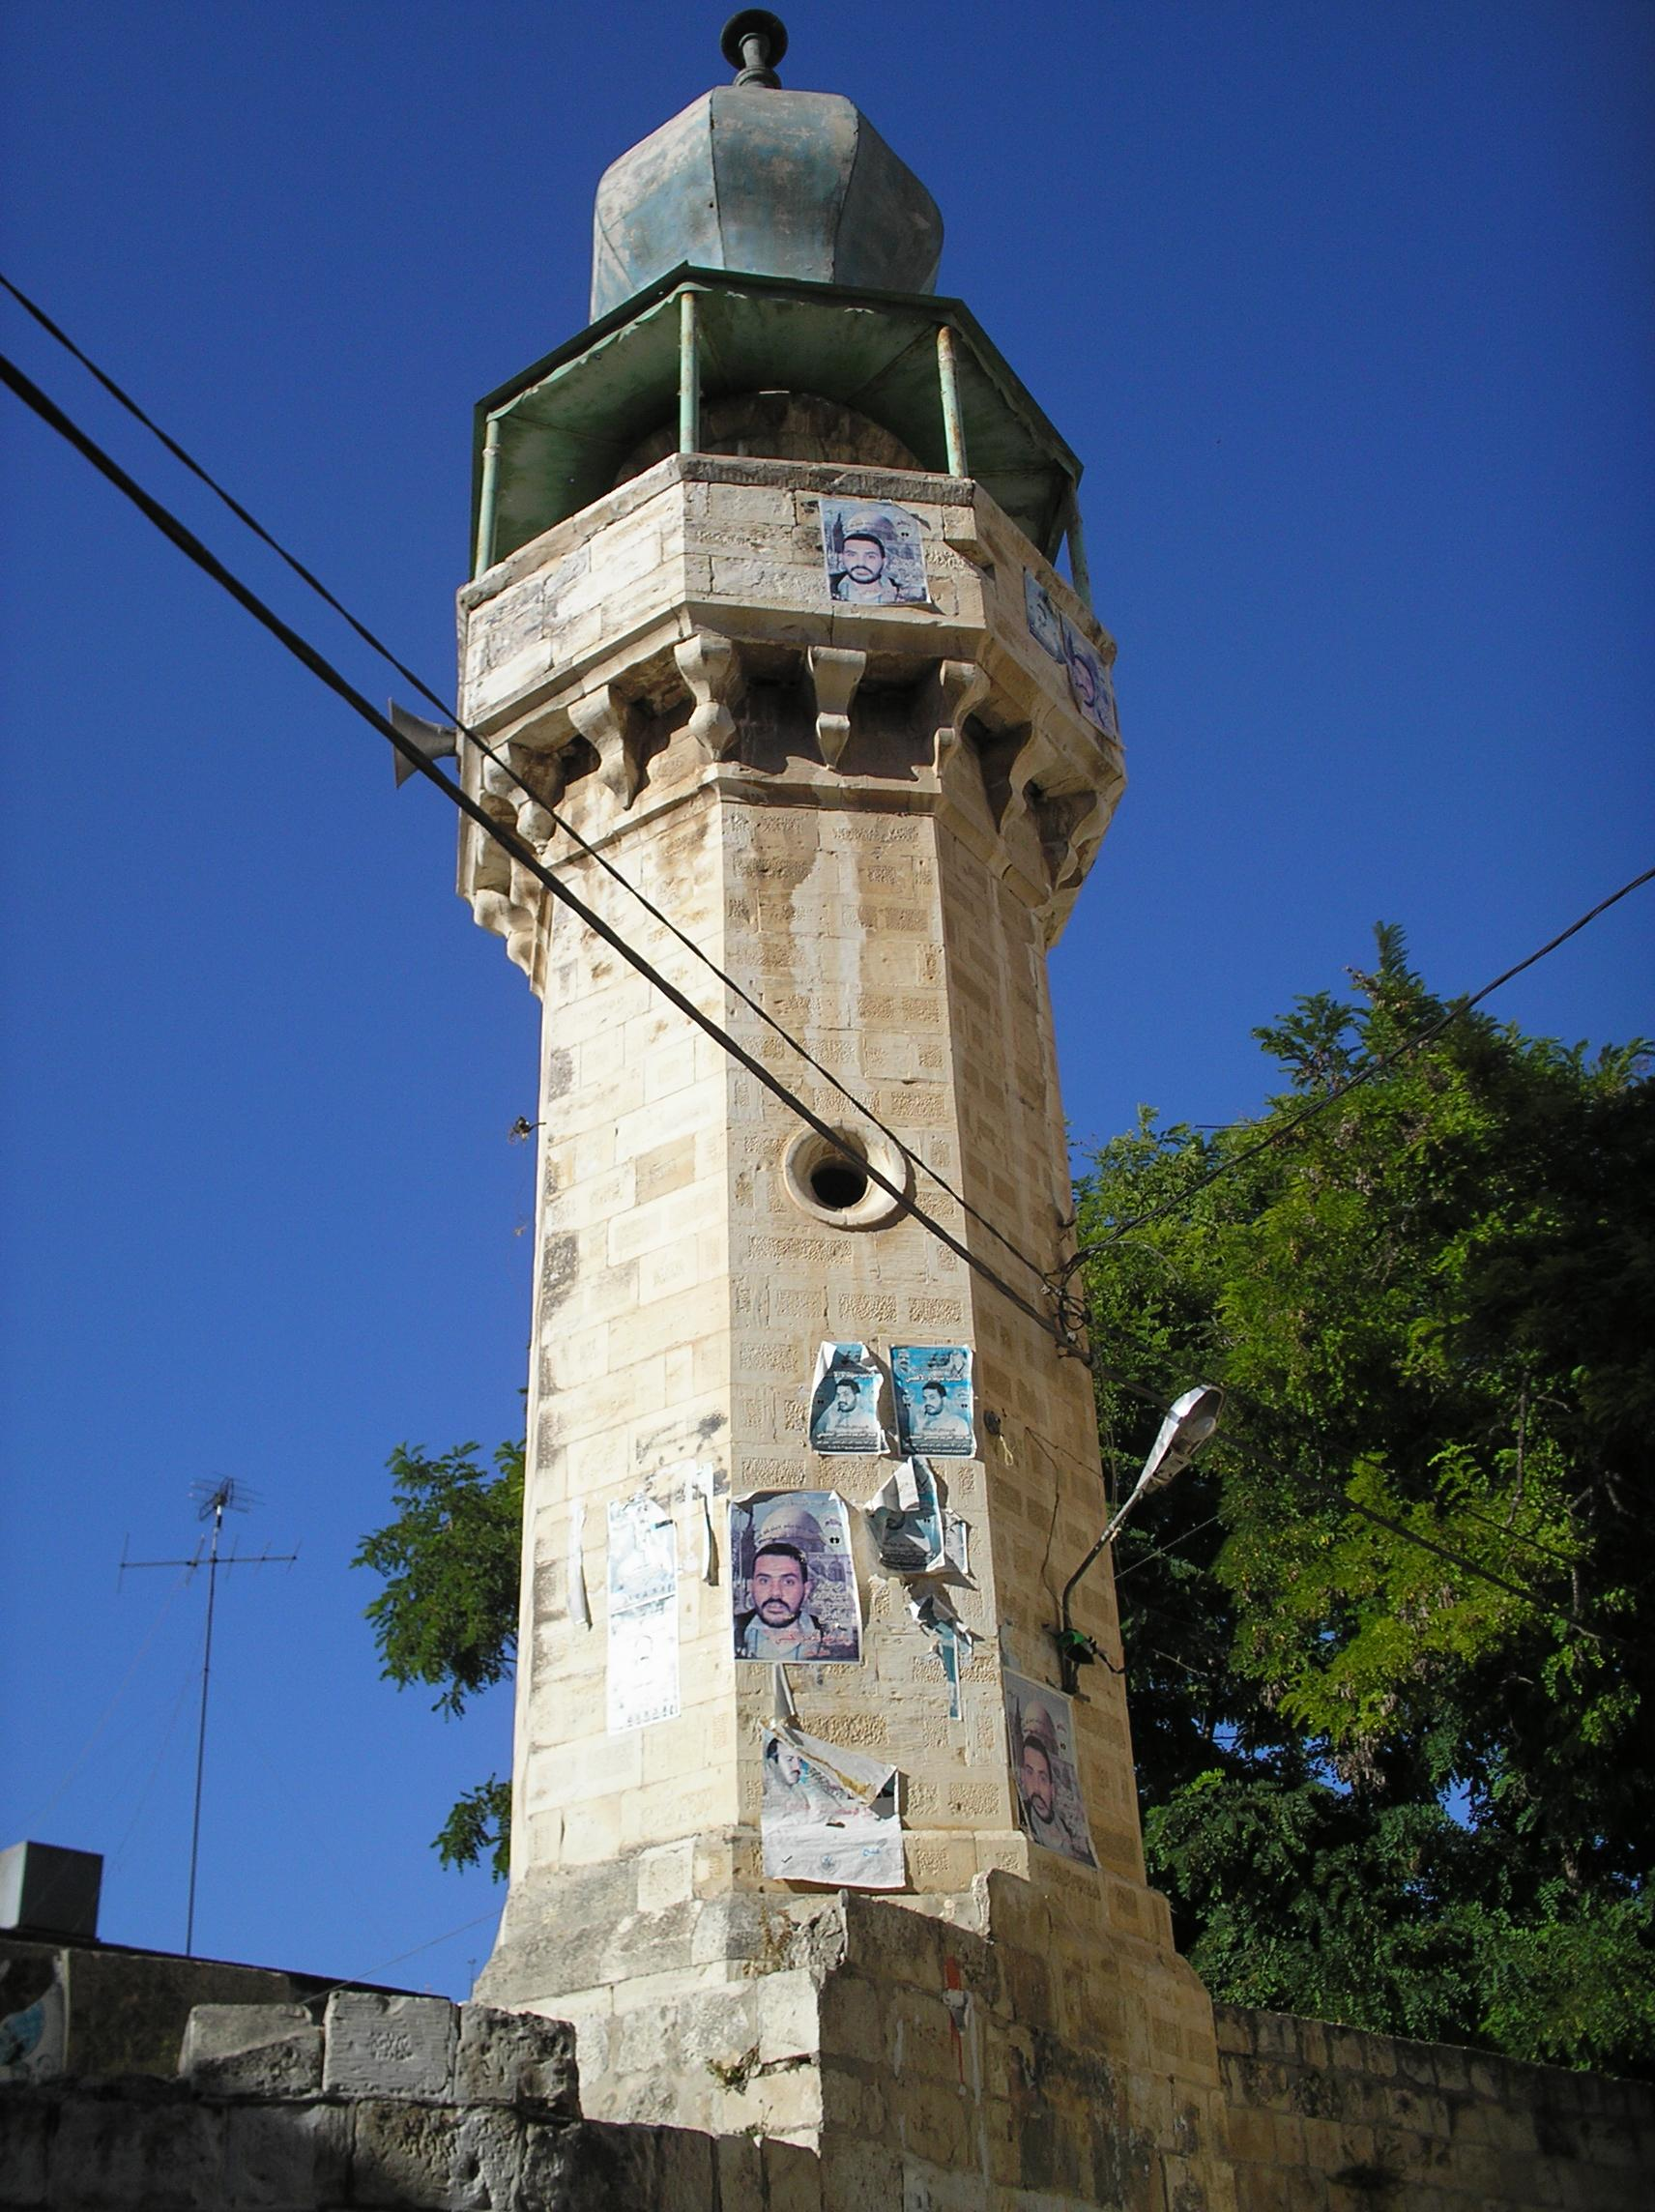 Nablus - نابلس : Casabah main mosque's minaret. Do you know the name? Please provide in the comments section below